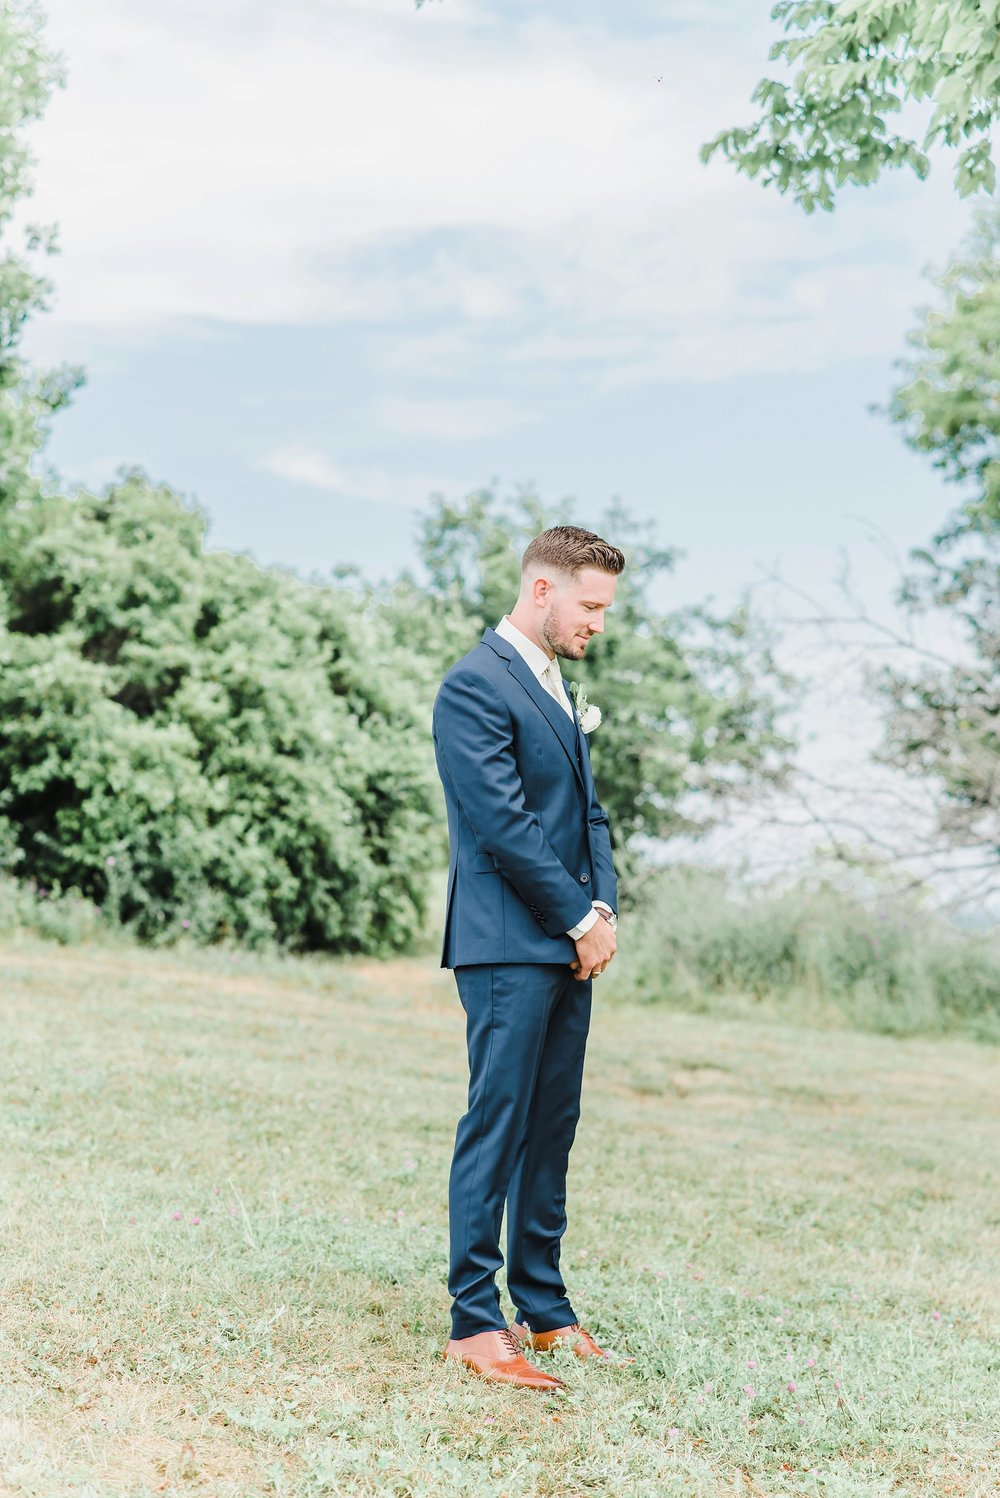 light airy indie fine art ottawa wedding photographer | Ali and Batoul Photography_0150.jpg